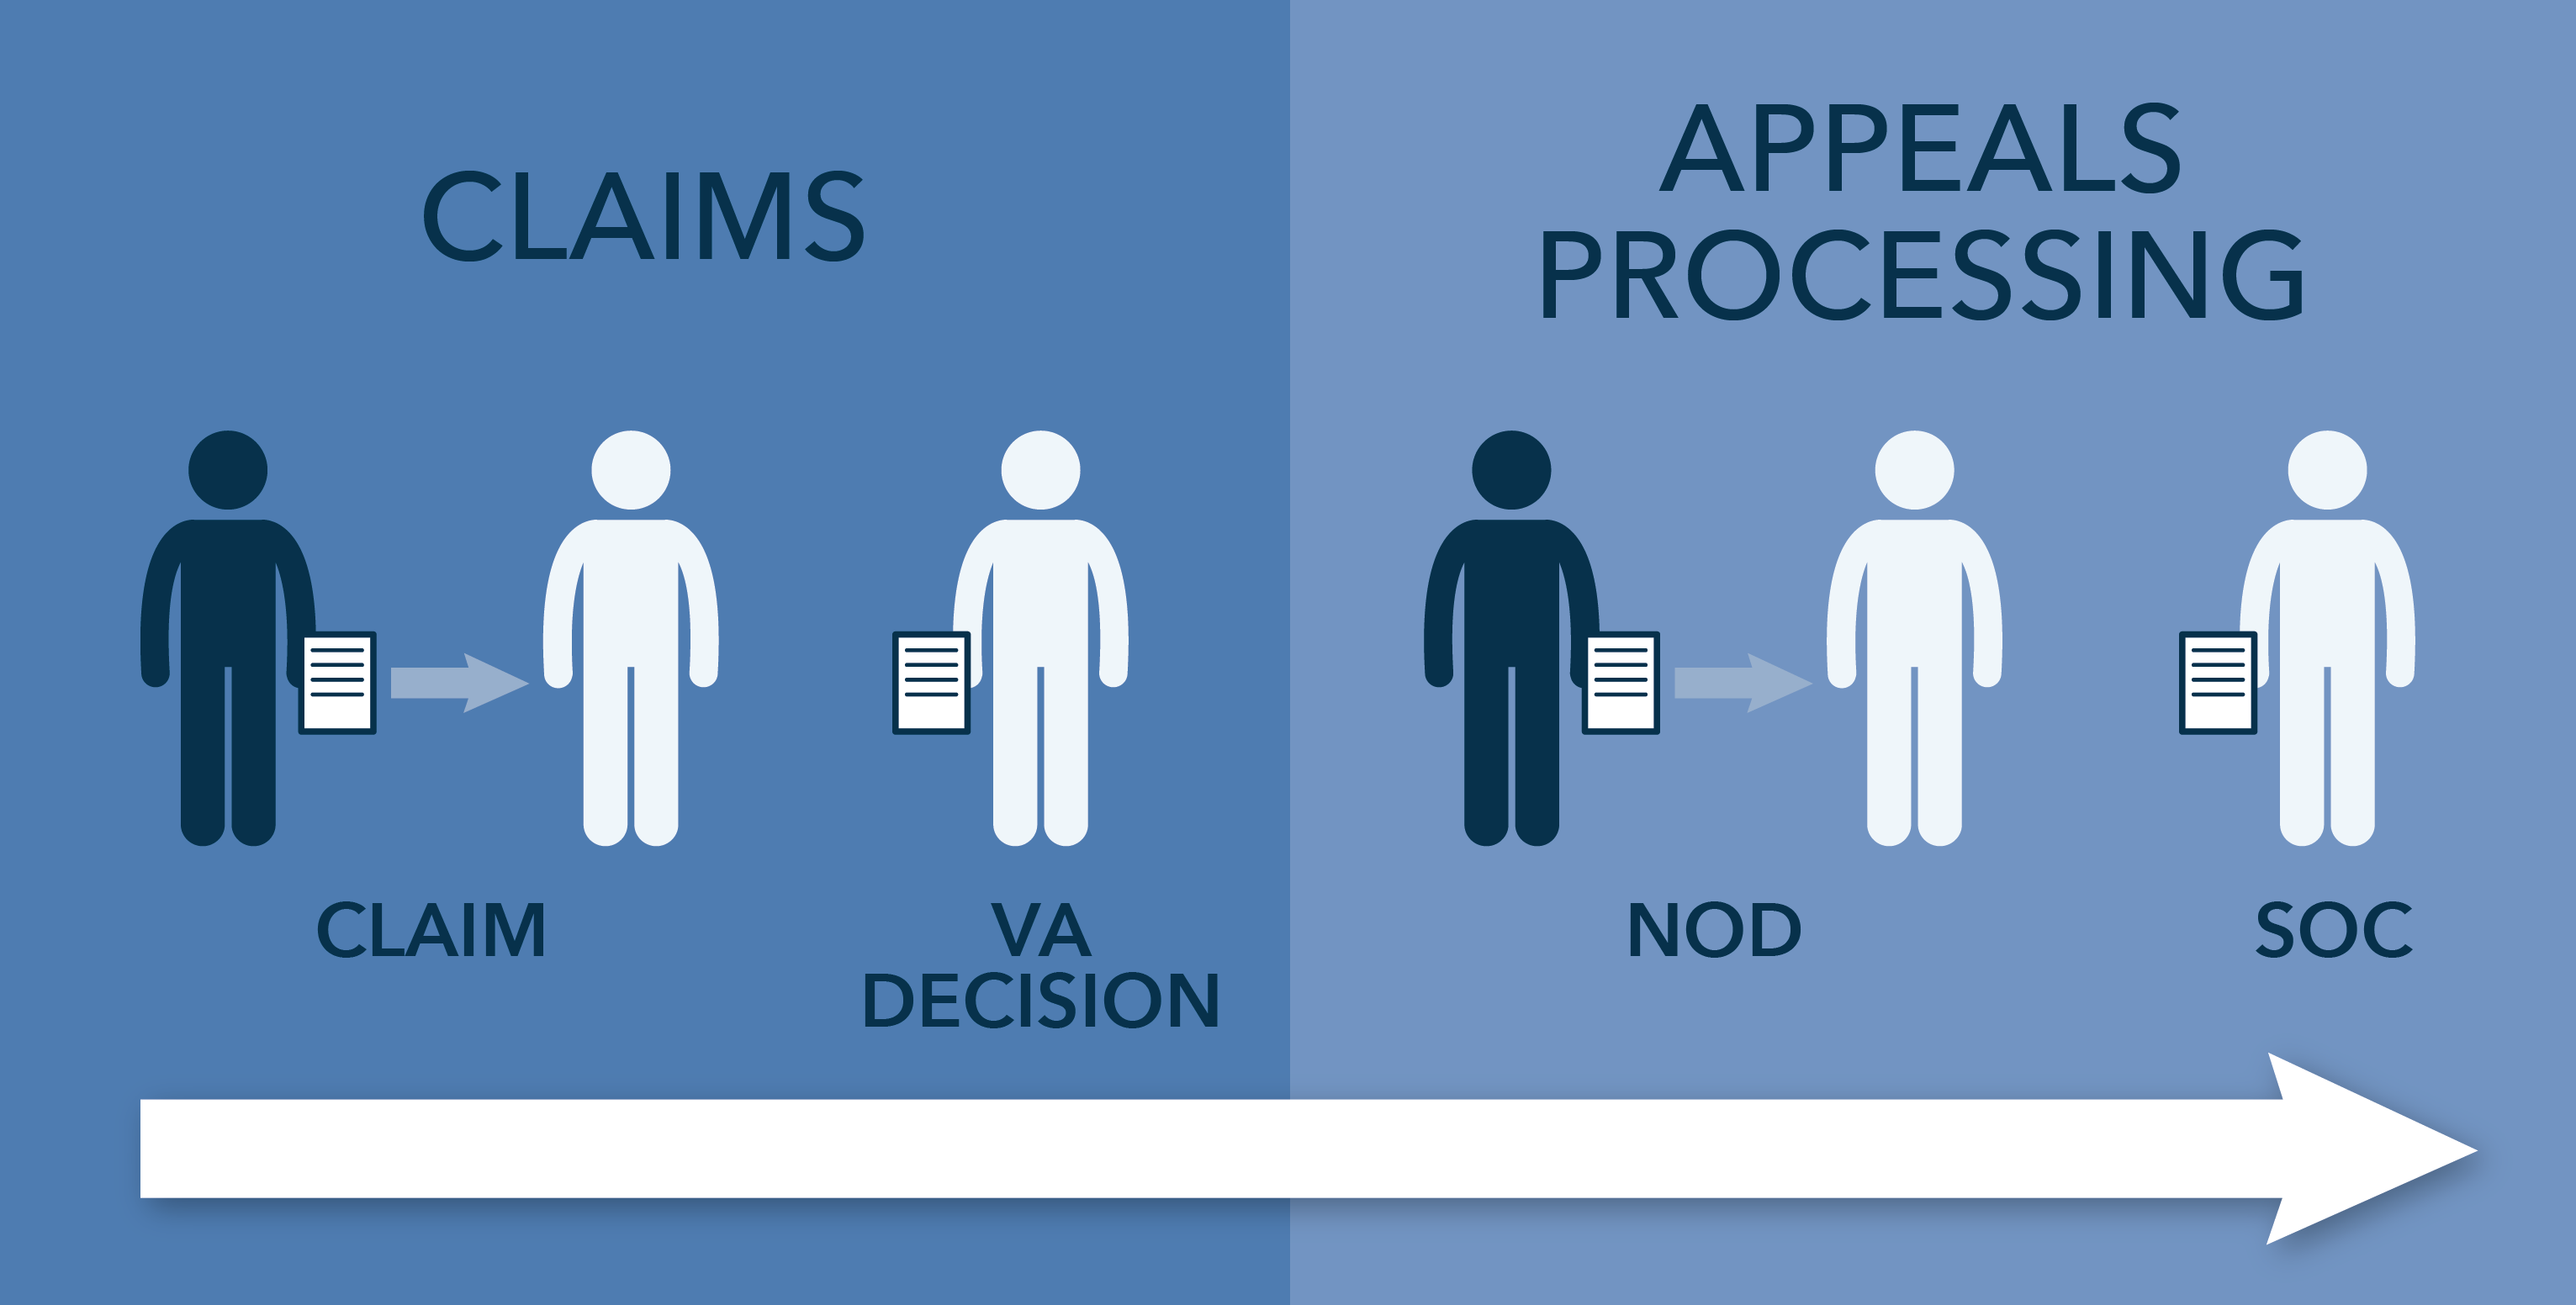 The appeals process: Appeals at the regional office level - VAntage